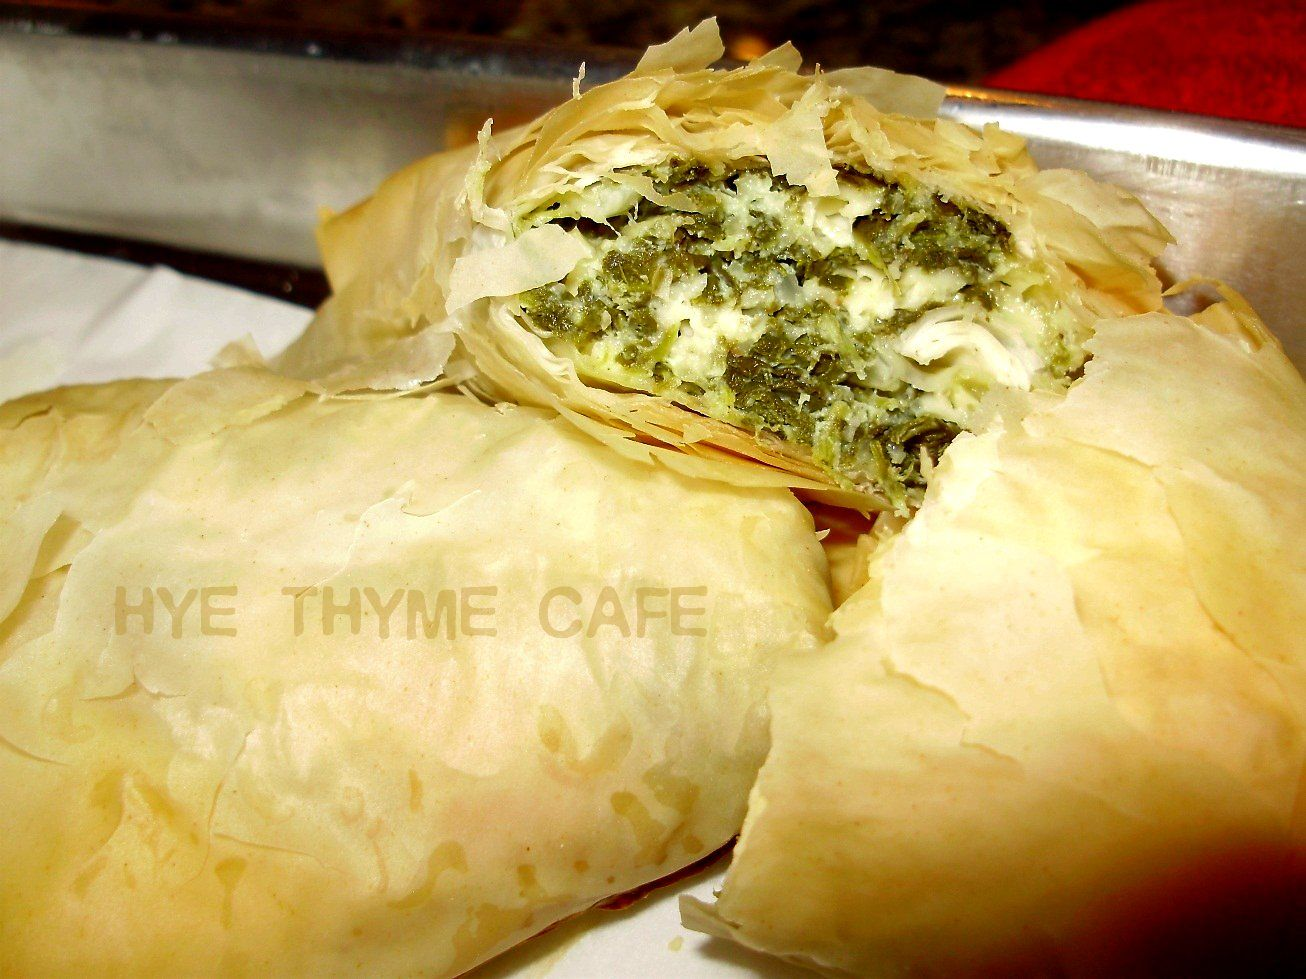 Hye thyme cafe spinach bouregs spanakopita with images